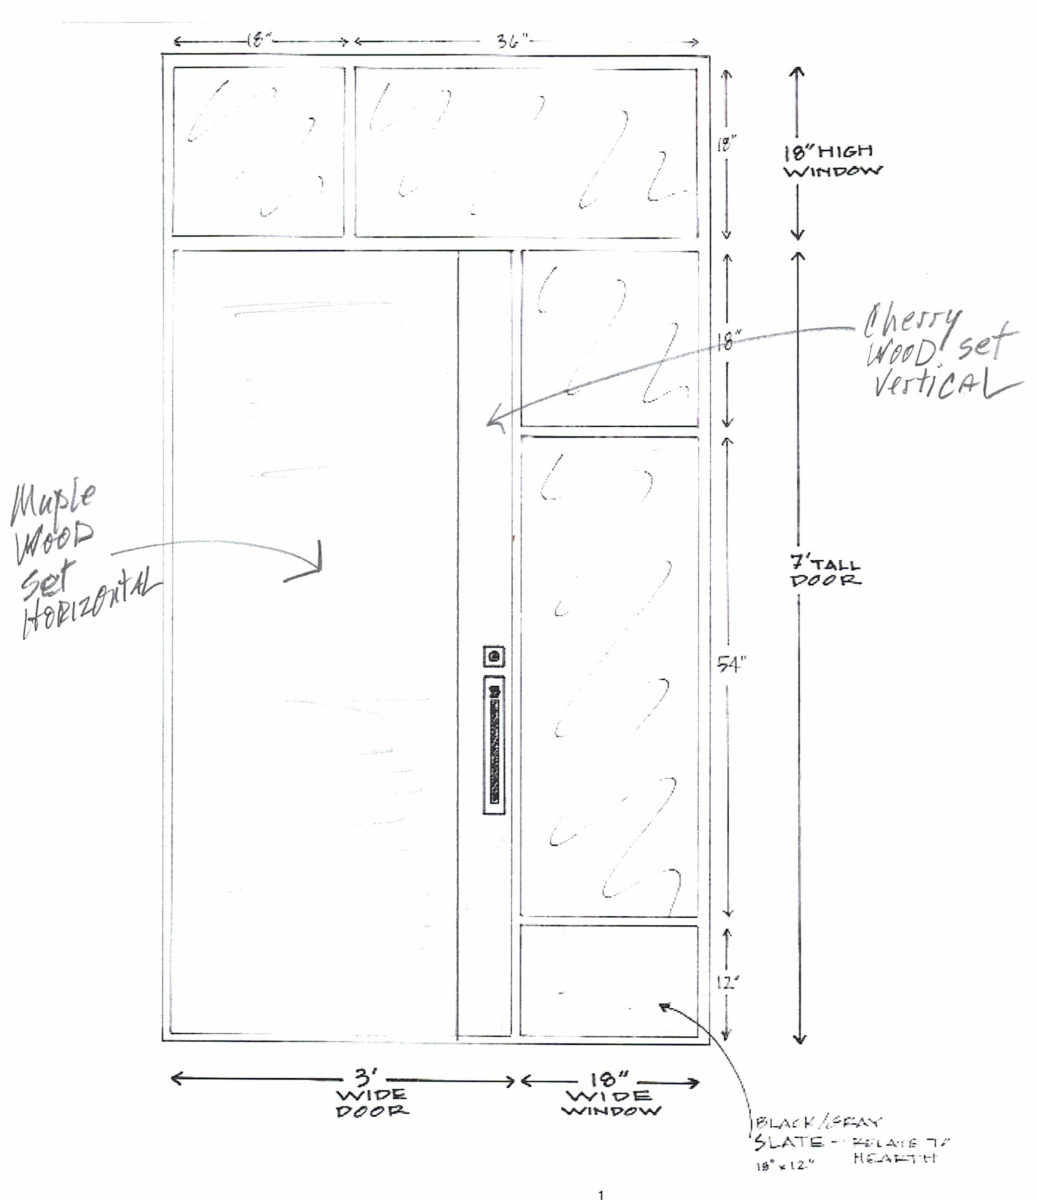 front door drawing for mission hills ranch